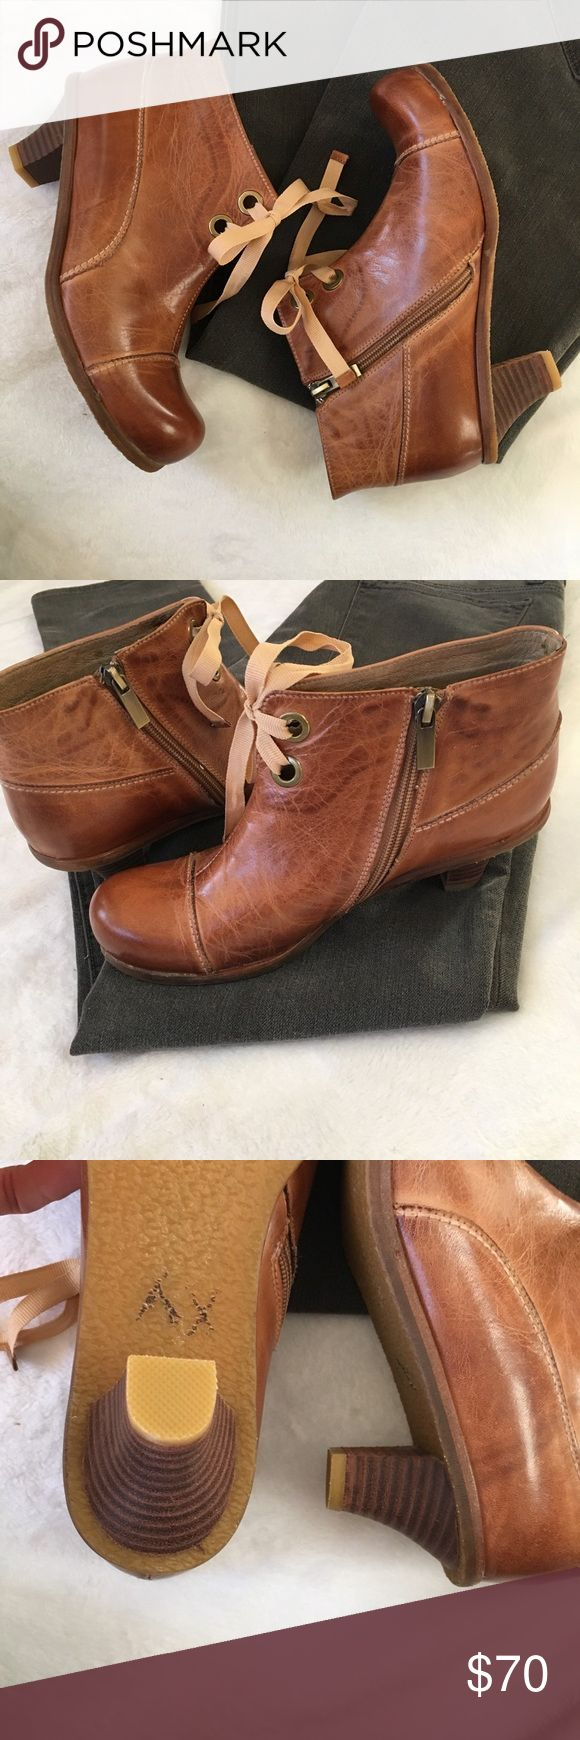 Antelope lace up leather booties in cognac Gorgeous pair of vintage inspired heeled brown leather booties from Antelope. Rounded toe and grommeted ribbon ties give these booties a Victorian feel. Beautiful cognac color leather is smooth and supple. Perf https://bellanblue.com